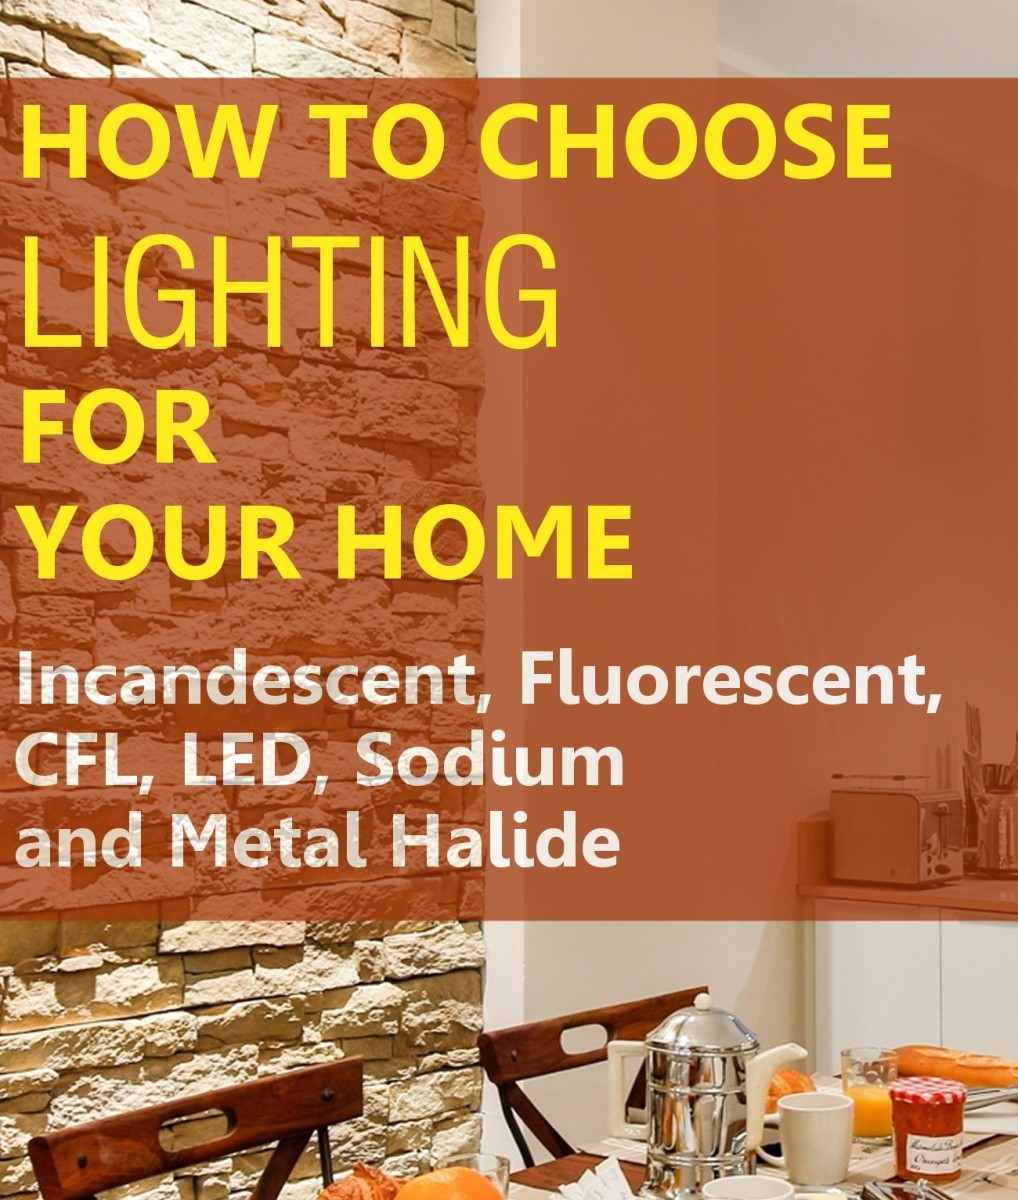 Choosing the Best Lighting for Your Home: LED, CFL, Fluorescent, Sodium, Halogen and Incandescent